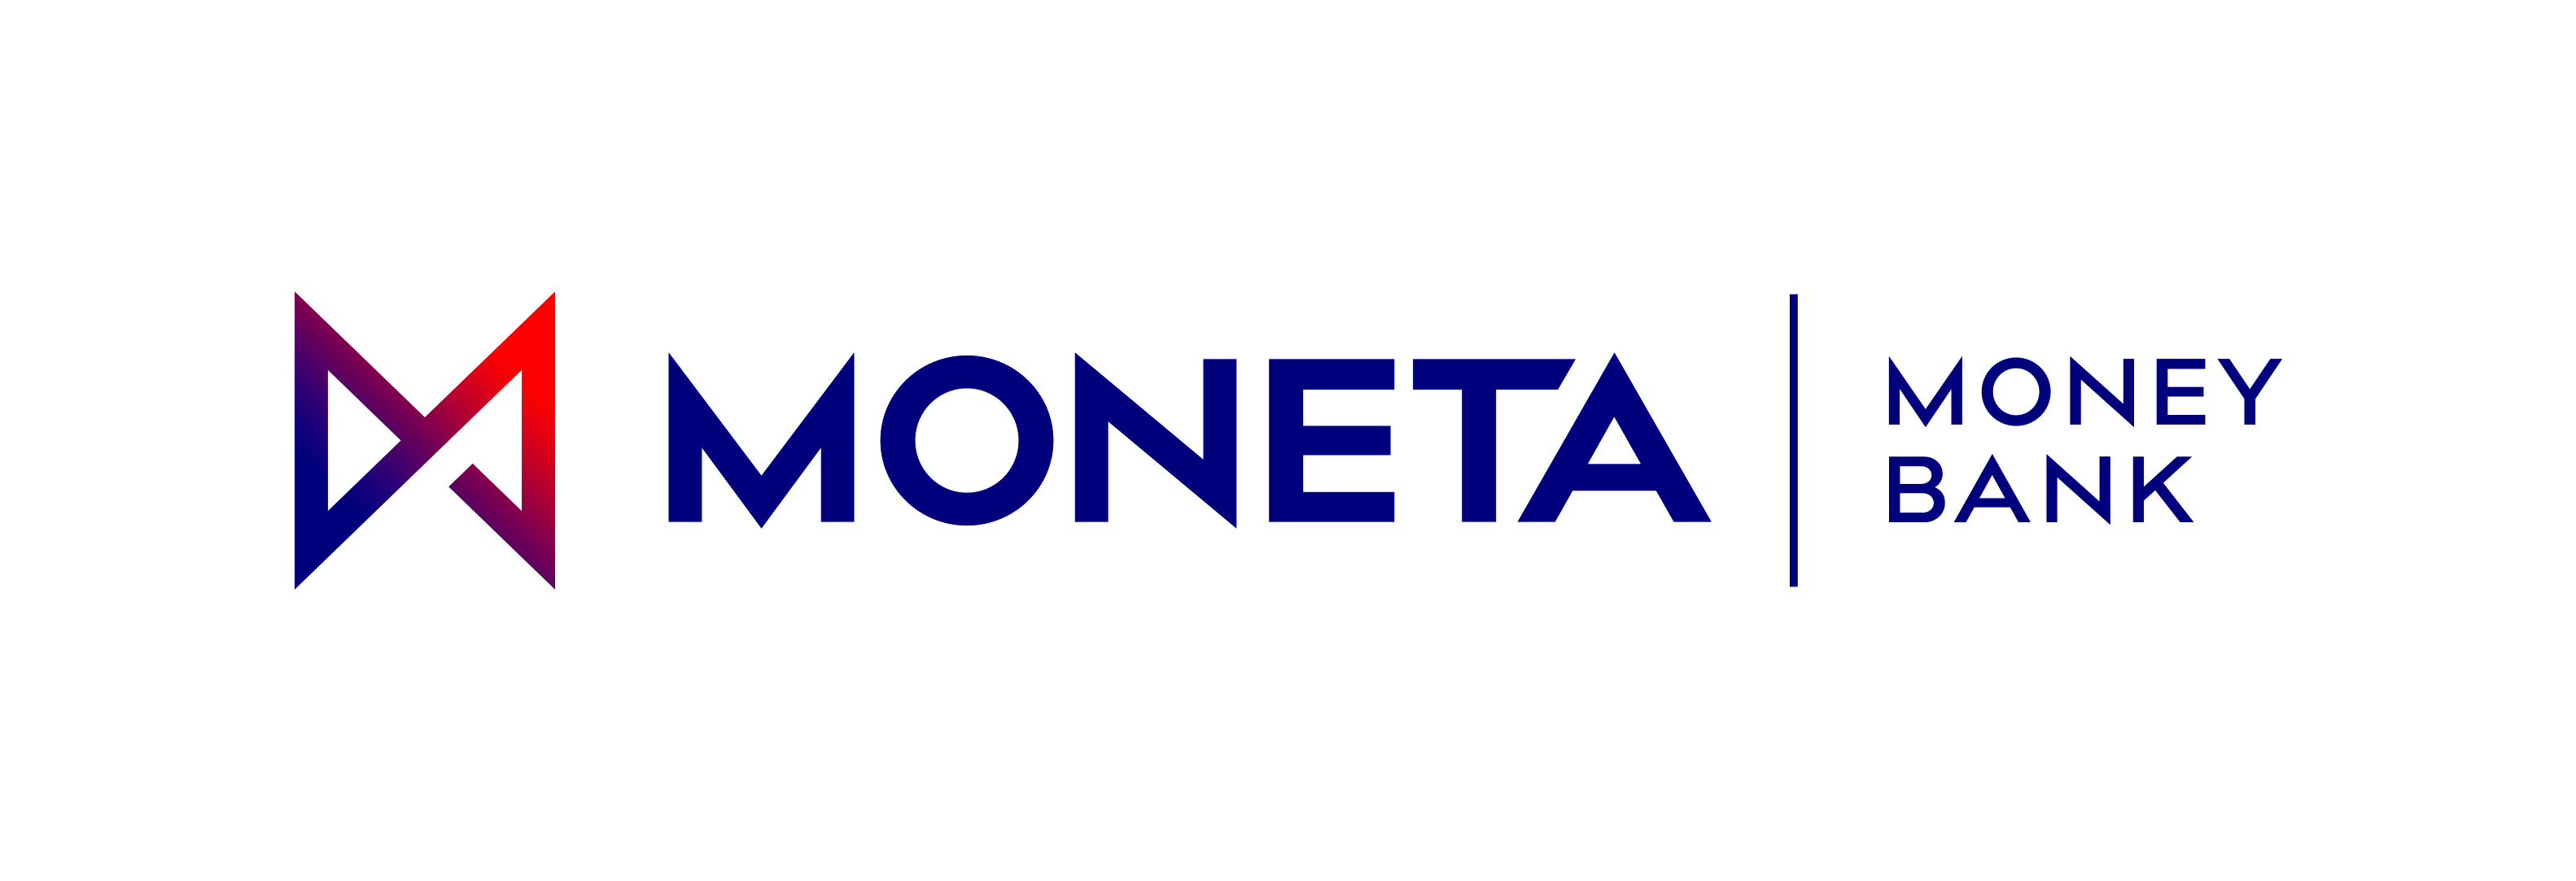 /logo_moneta_money_bank/